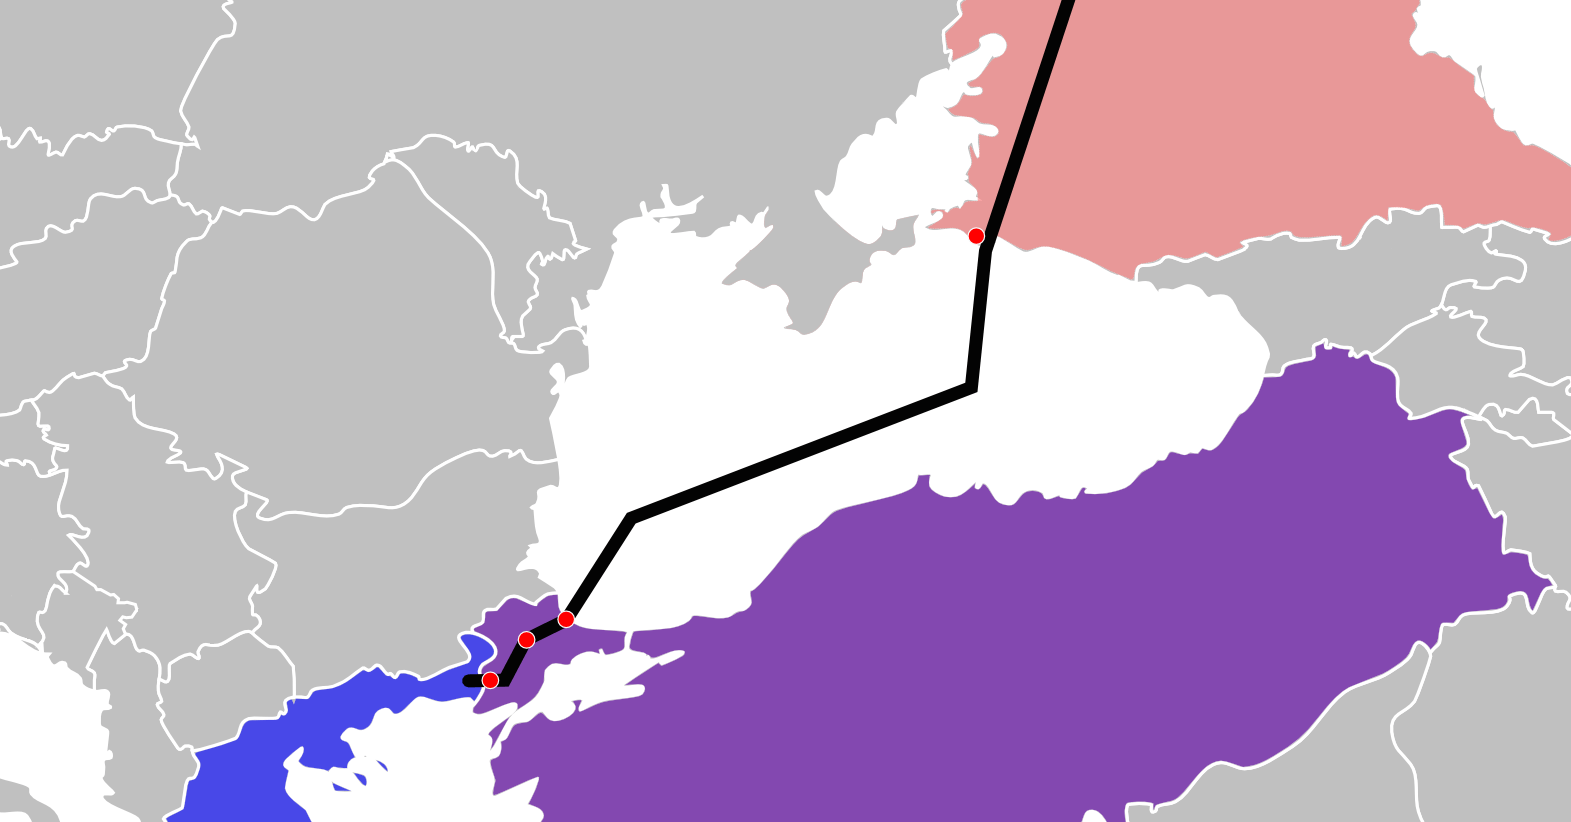 One possible route of the Turkish Stream pipeline project. Another envisions a shorter pipeline, travelling to northern Turkey, where it could connect to other pipelines inside the country.